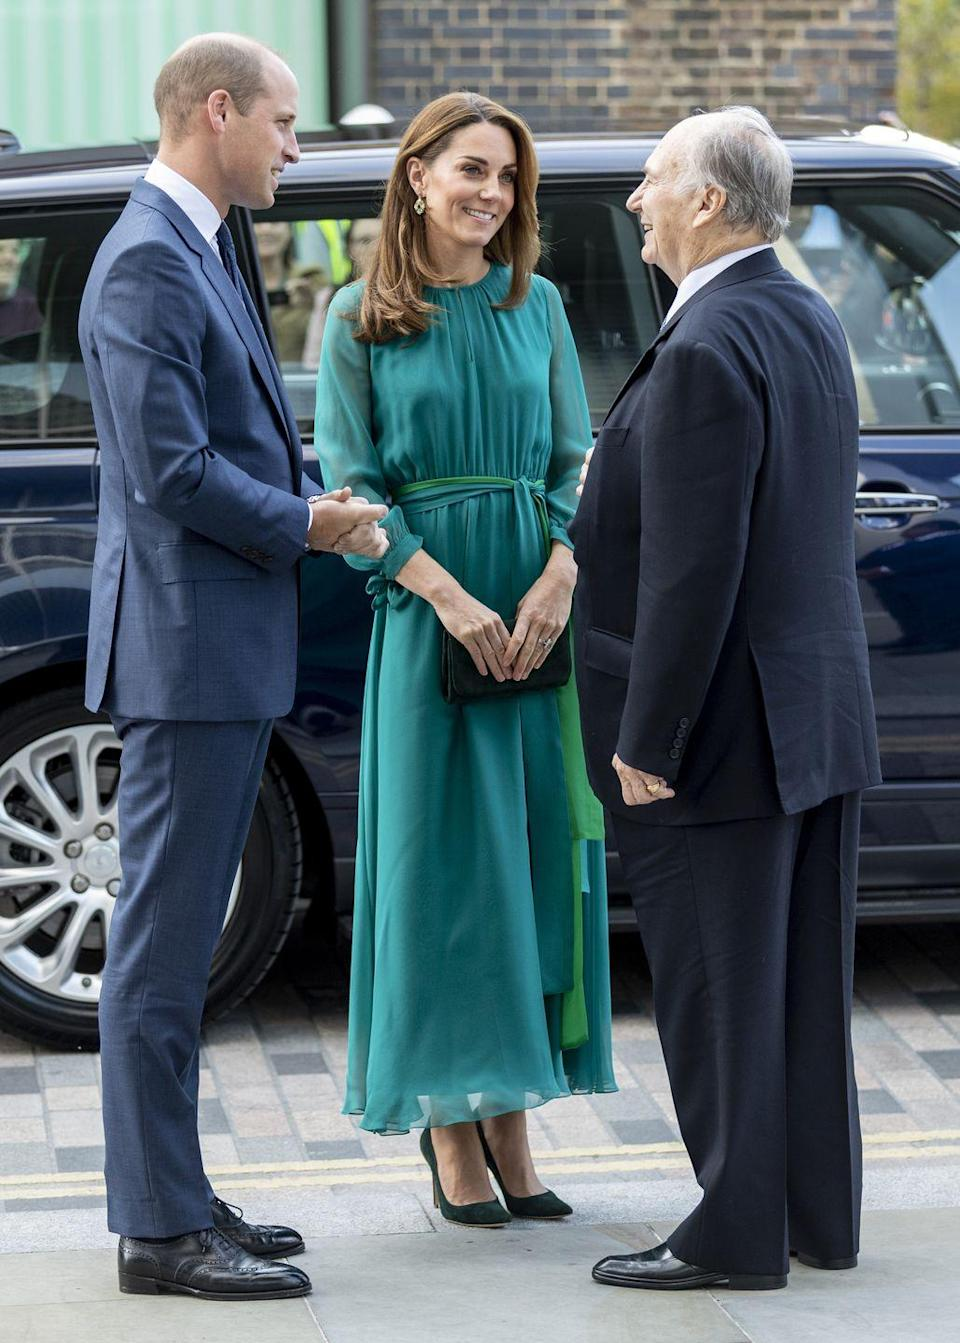 "<p>The Duchess of Cambridge stepped out for a meeting with Prince Shah Karim Al Hussaini, Aga Khan IV at the Aga Khan Centre wearing dark <a href=""https://www.net-a-porter.com/us/en/product/1114994/aross_girl_x_soler/amanda-silk-georgette-maxi-dress?"" rel=""nofollow noopener"" target=""_blank"" data-ylk=""slk:green dress by ARoss Girl x Soler"" class=""link rapid-noclick-resp"">green dress by ARoss Girl x Soler</a>. Kate completed the look with <a href=""https://www.zeenwoman.com/row/wxe92033-green-dazzling-ceramic-drops"" rel=""nofollow noopener"" target=""_blank"" data-ylk=""slk:an affordable pair of earrings by the Pakistani designer Zeen"" class=""link rapid-noclick-resp"">an affordable pair of earrings by the Pakistani designer Zeen</a>.</p>"